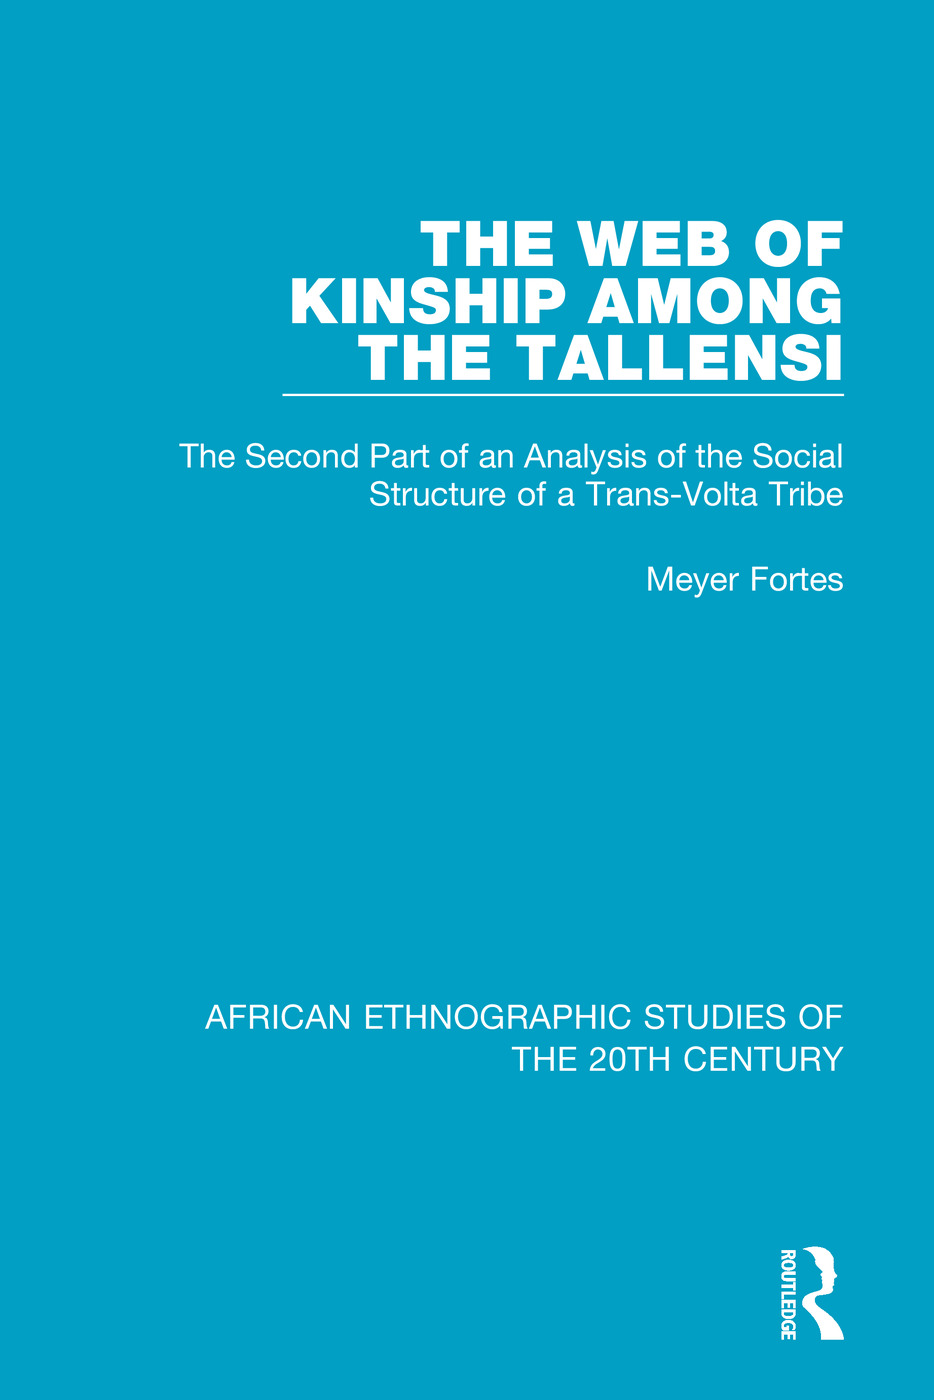 The Web of Kinship Among the Tallensi: The Second Part of an Analysis of the Social Structure of a Trans-Volta Tribe book cover